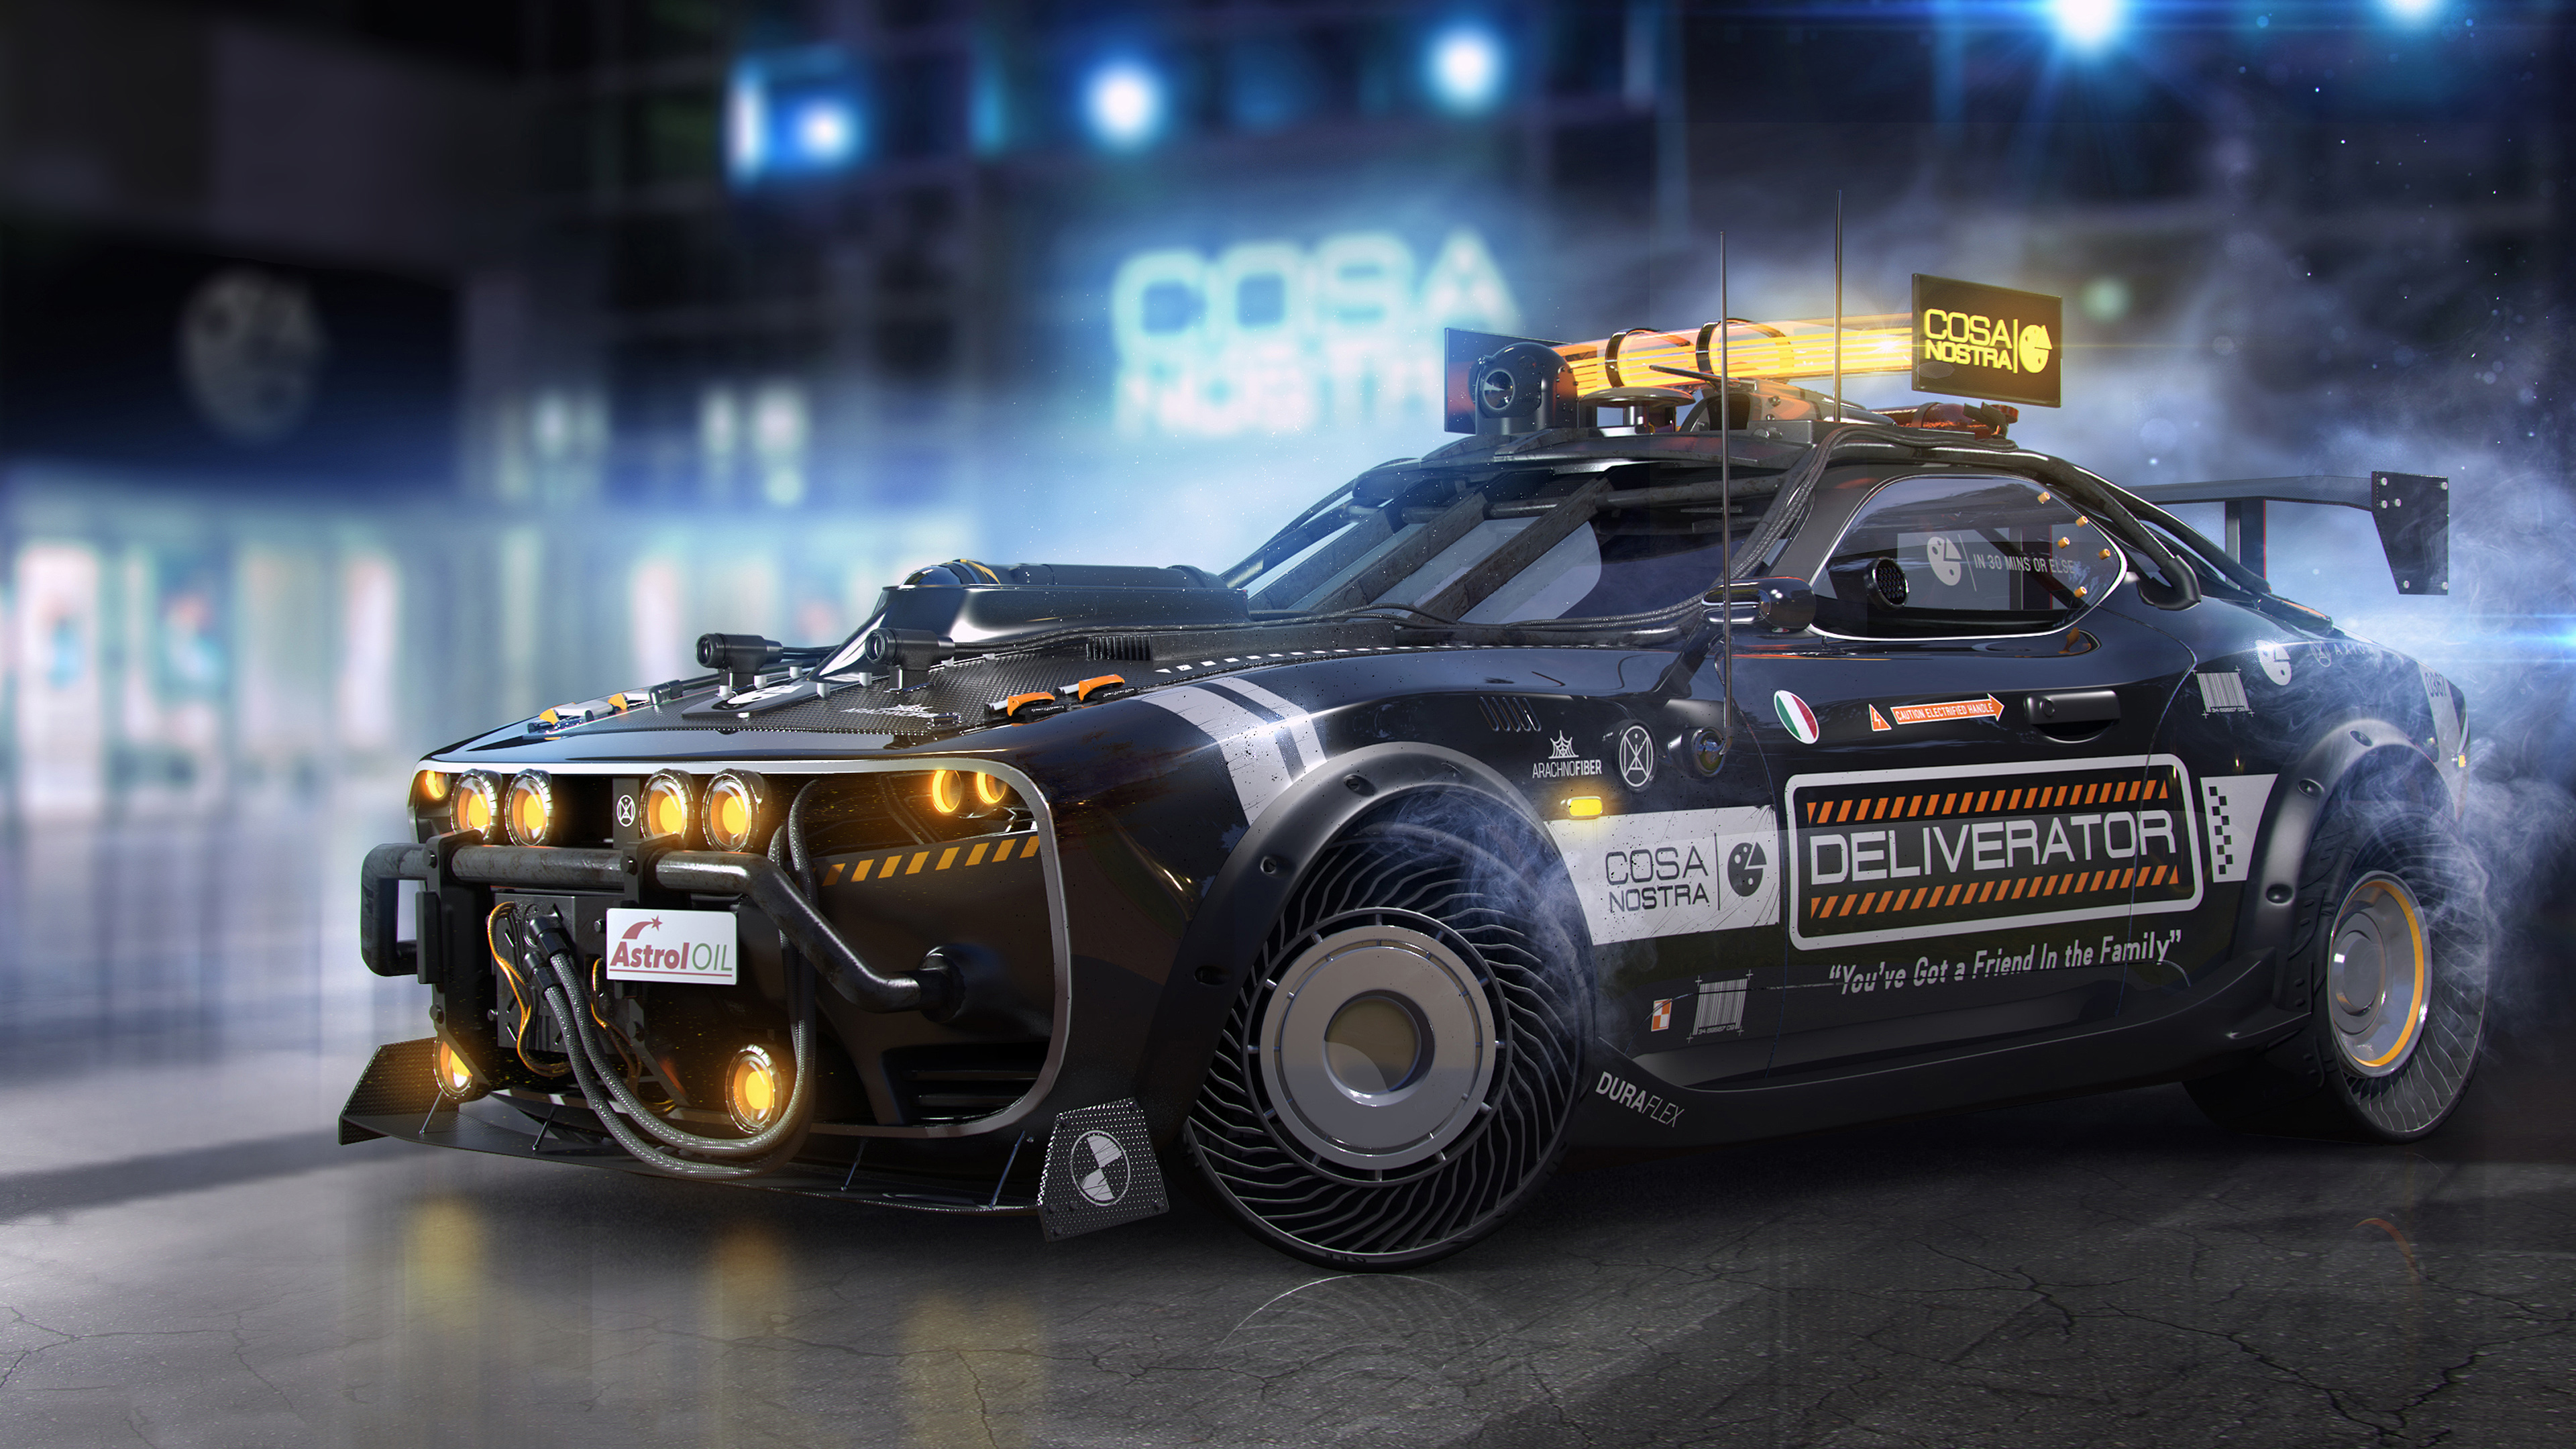 Wallpaper 4k Cosa Nostra Pizza Delivery Vehicle 4k 4k